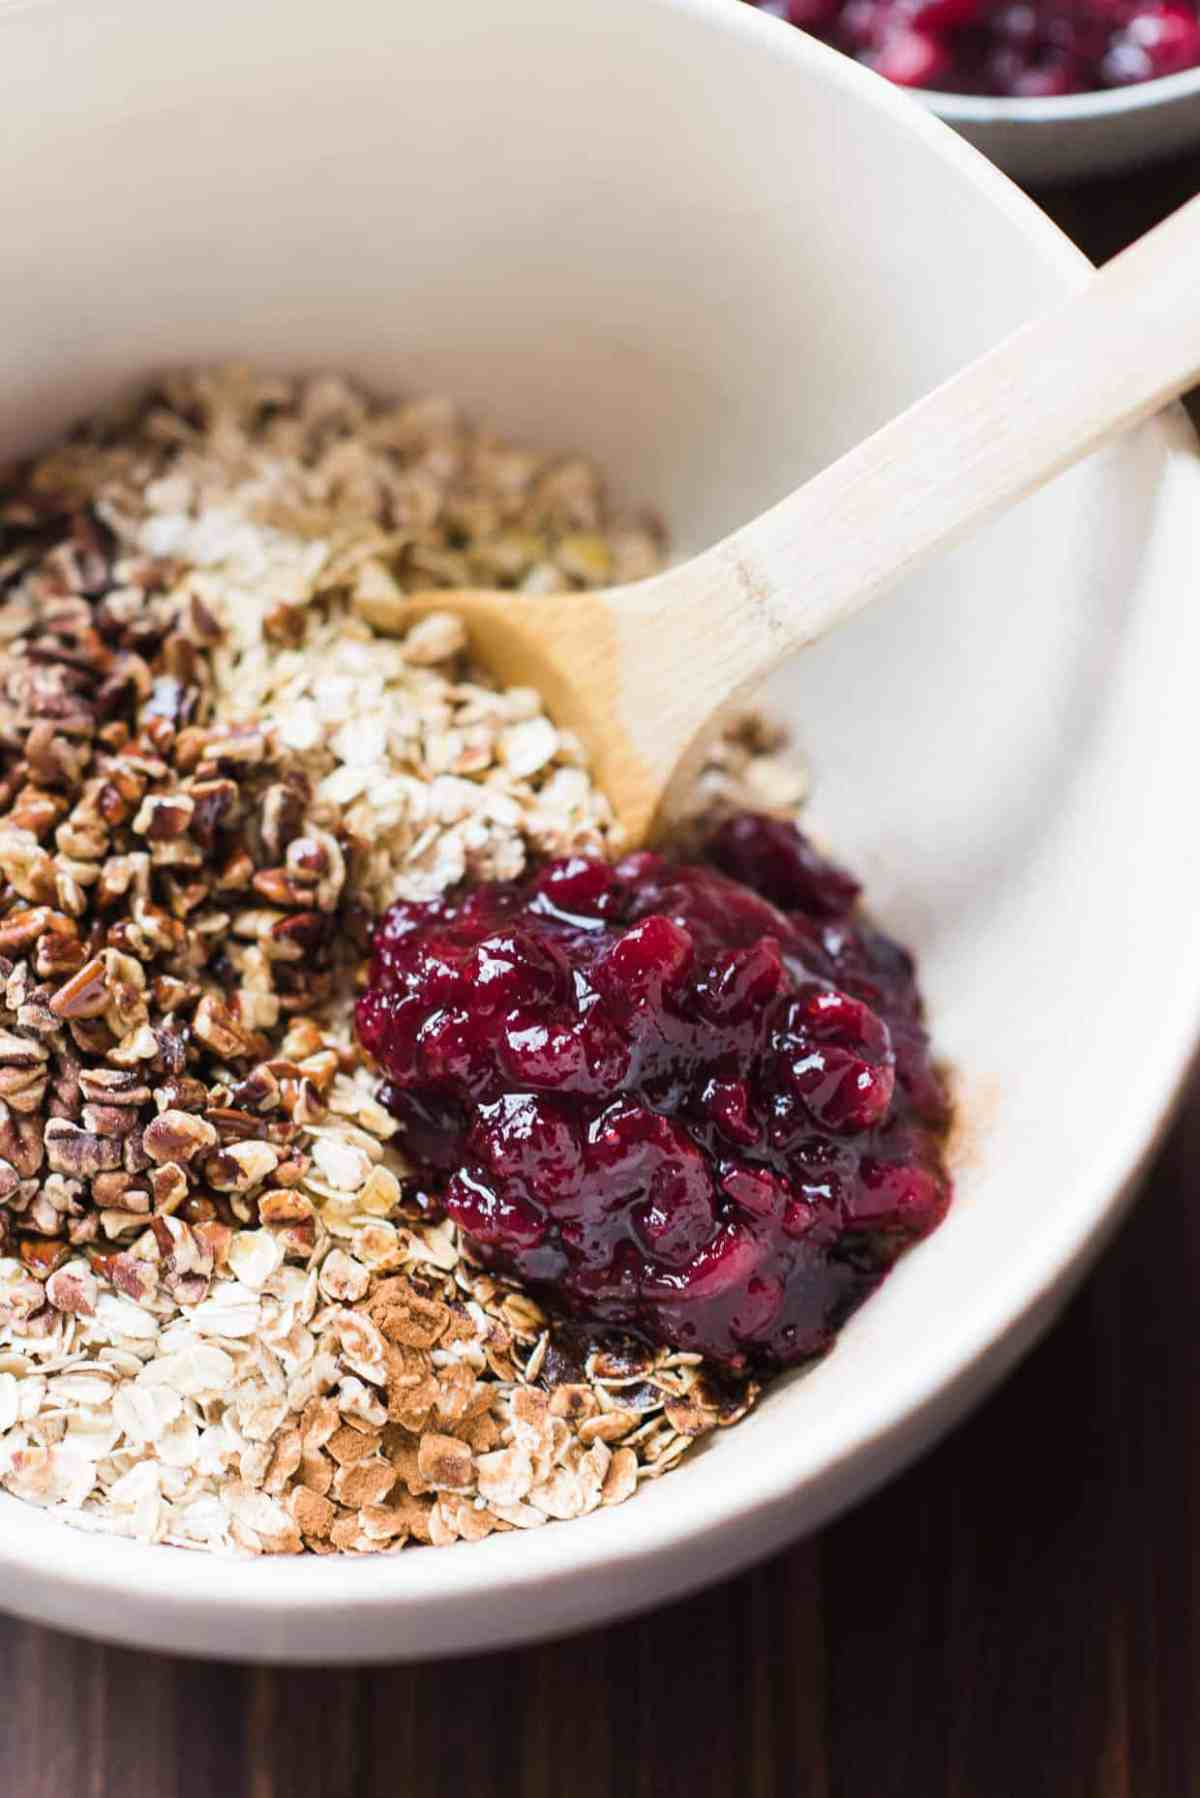 Mix of ingredients to make Cranberry Sauce Granola with cranberry sauce leftovers.